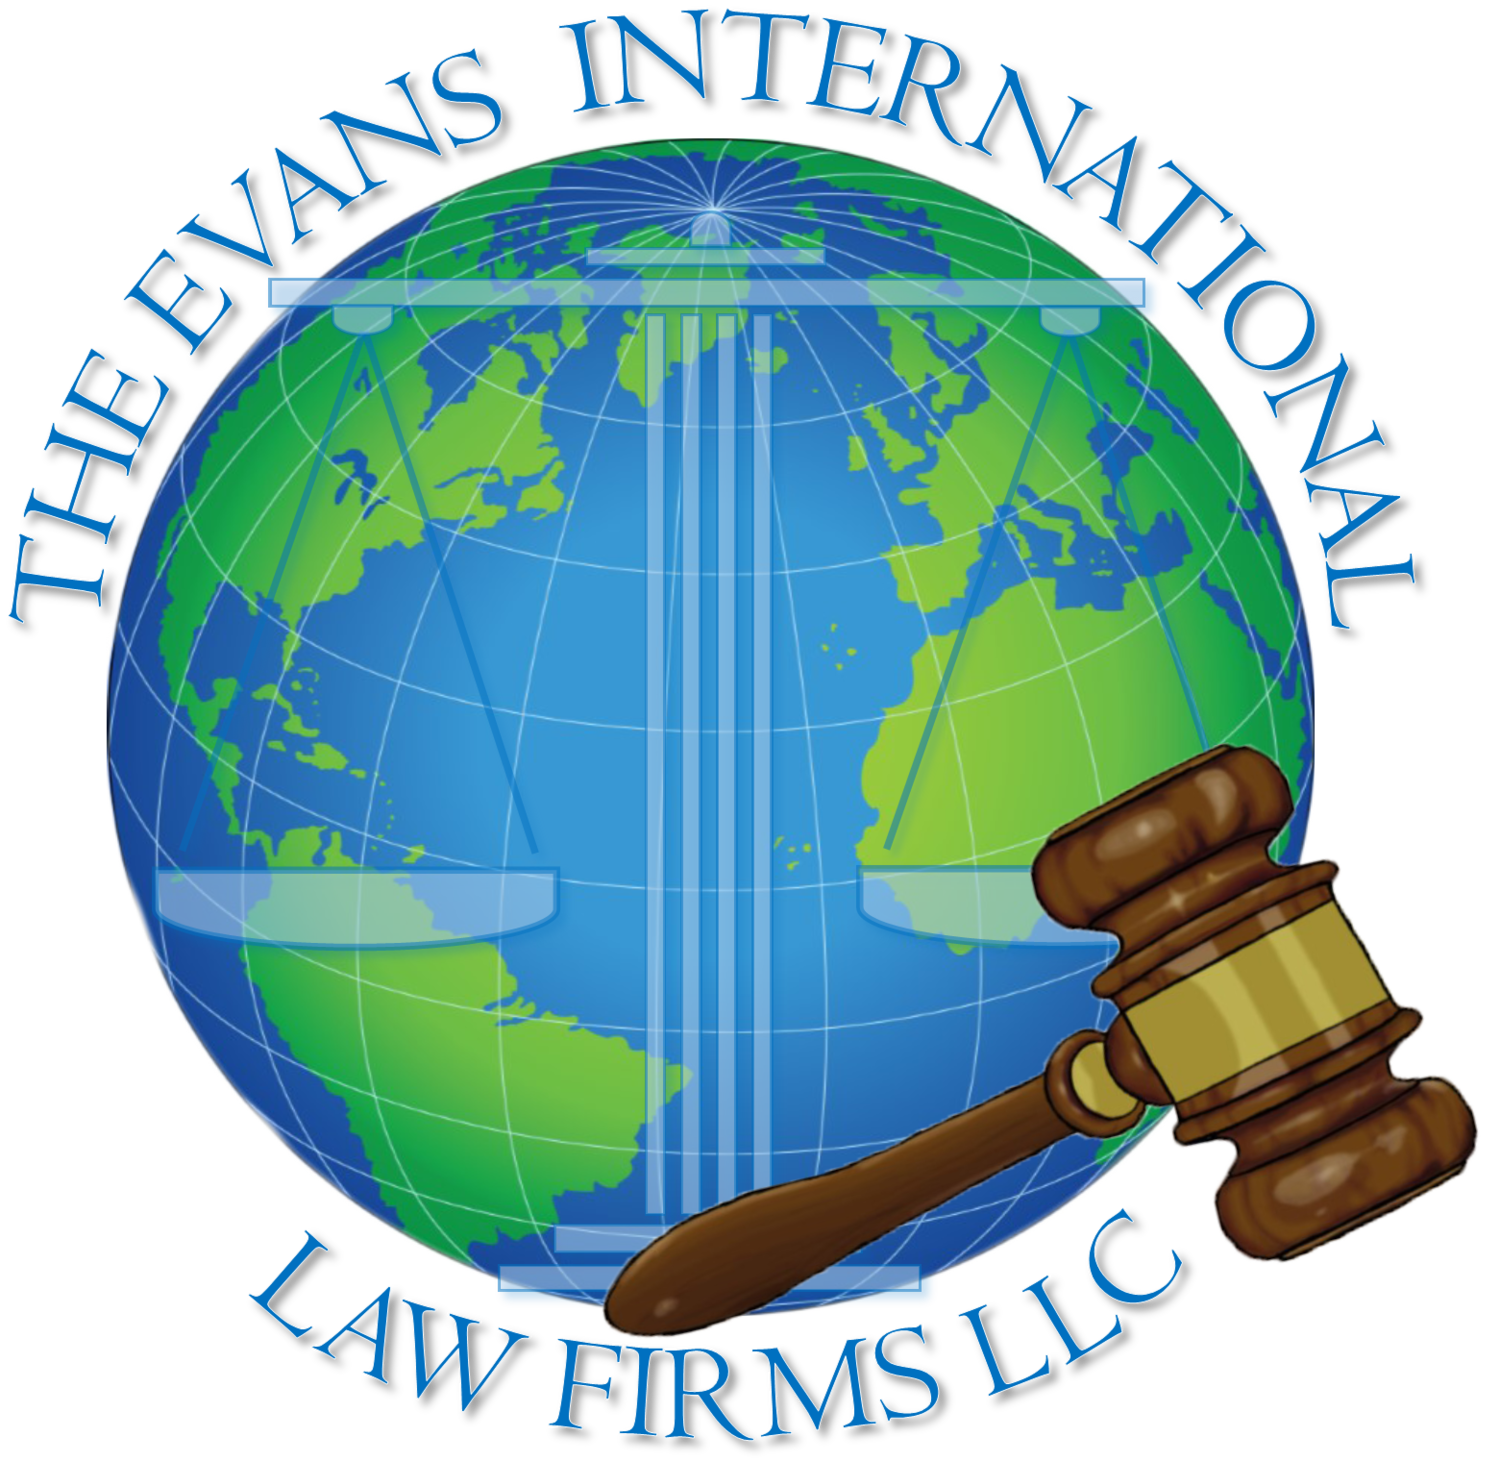 The Evans International Law Firms, LLC